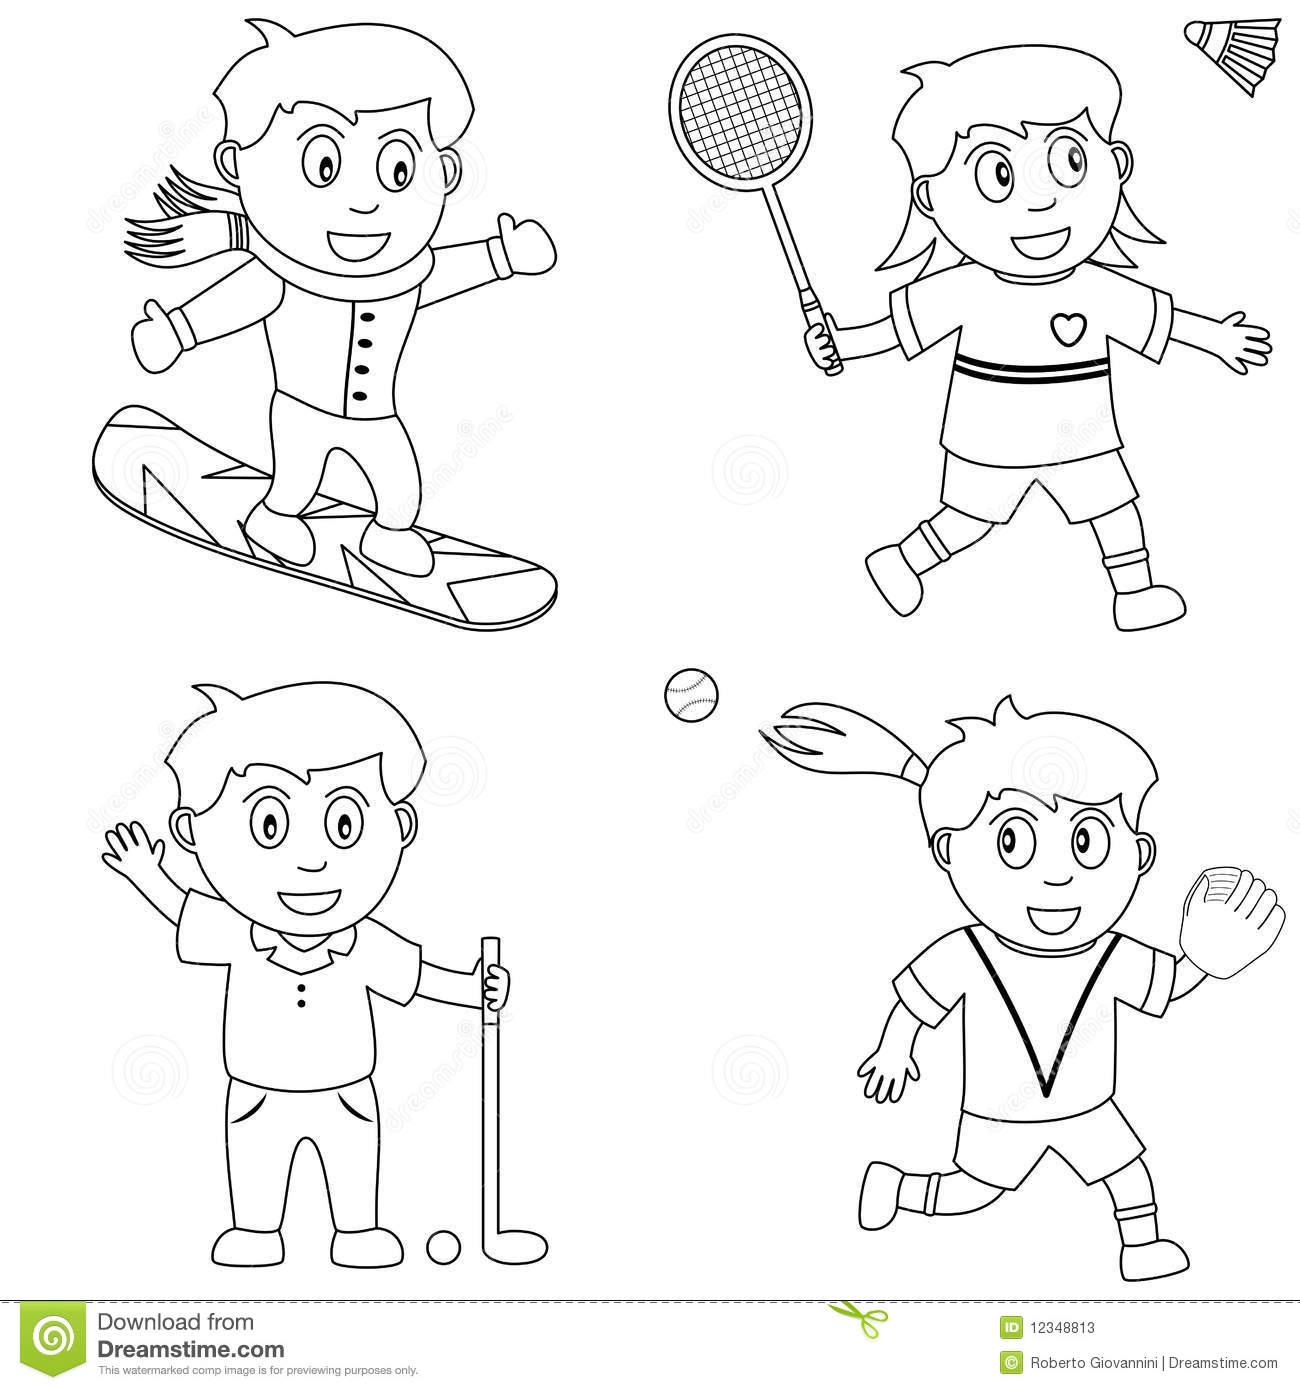 Coloring Sport For Kids [5] Stock Photos - Image: 12348813